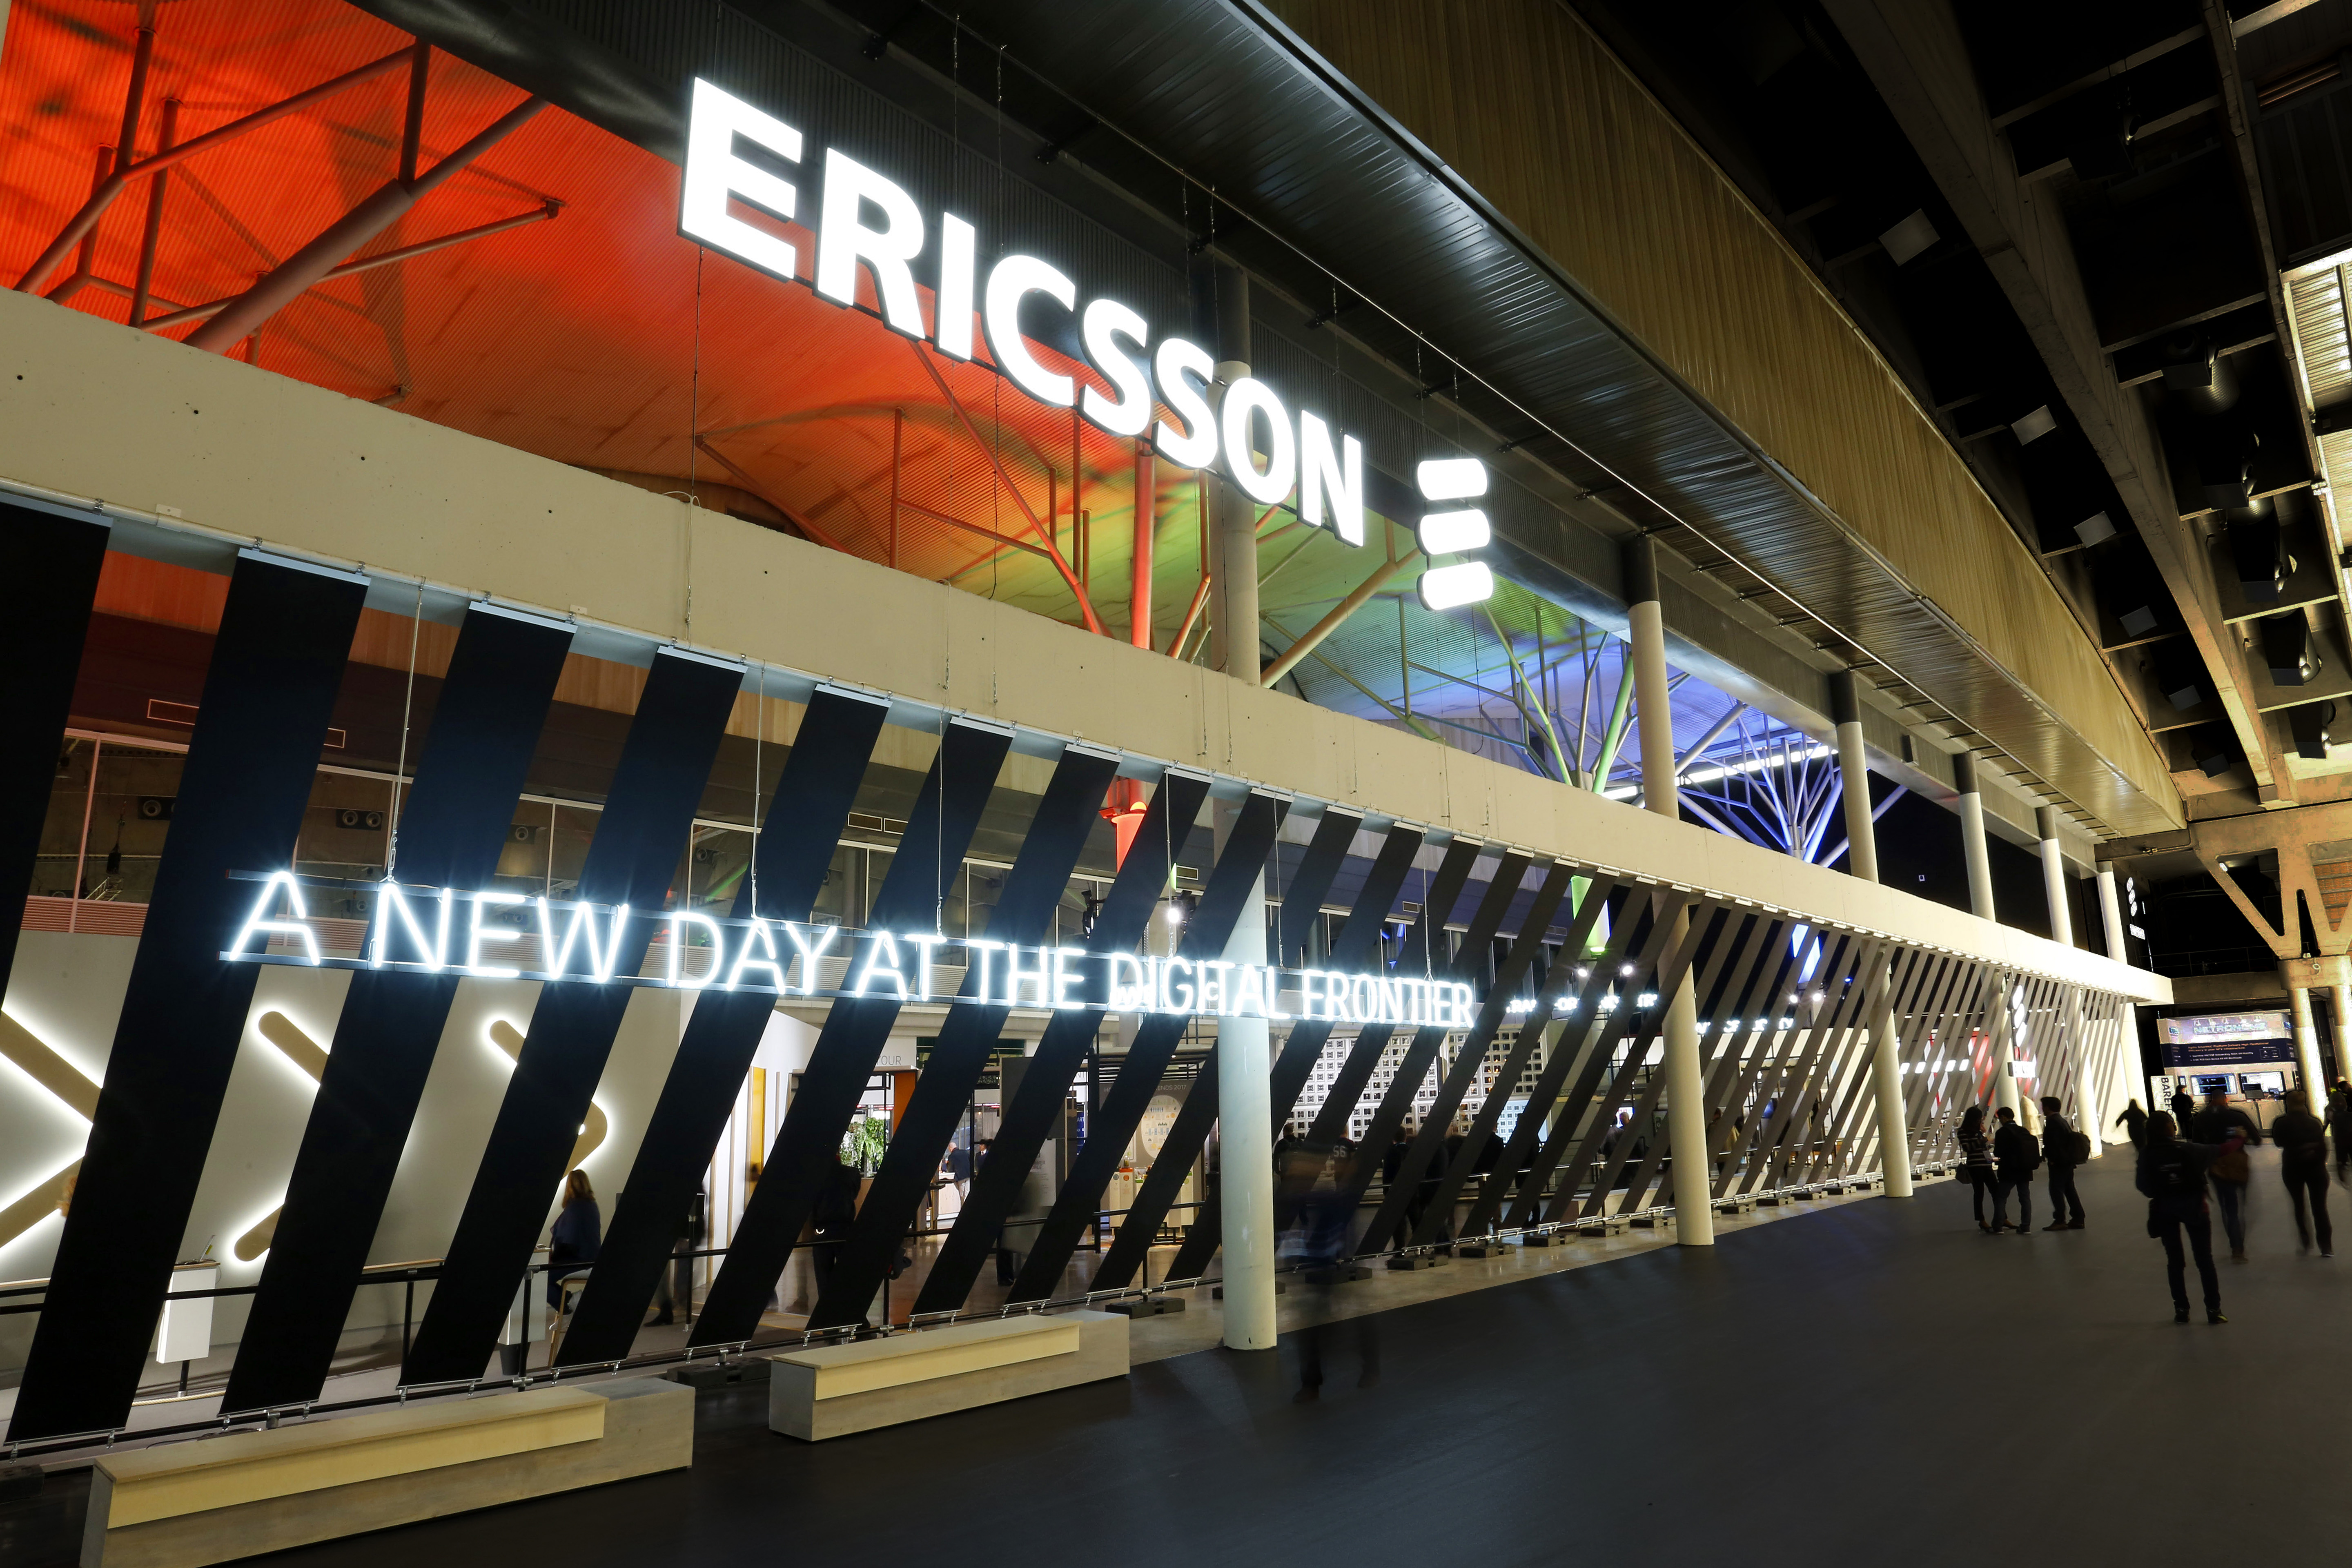 Ericsson's MWC Experience Brings Pioneering Work at the Digital Frontier to Life